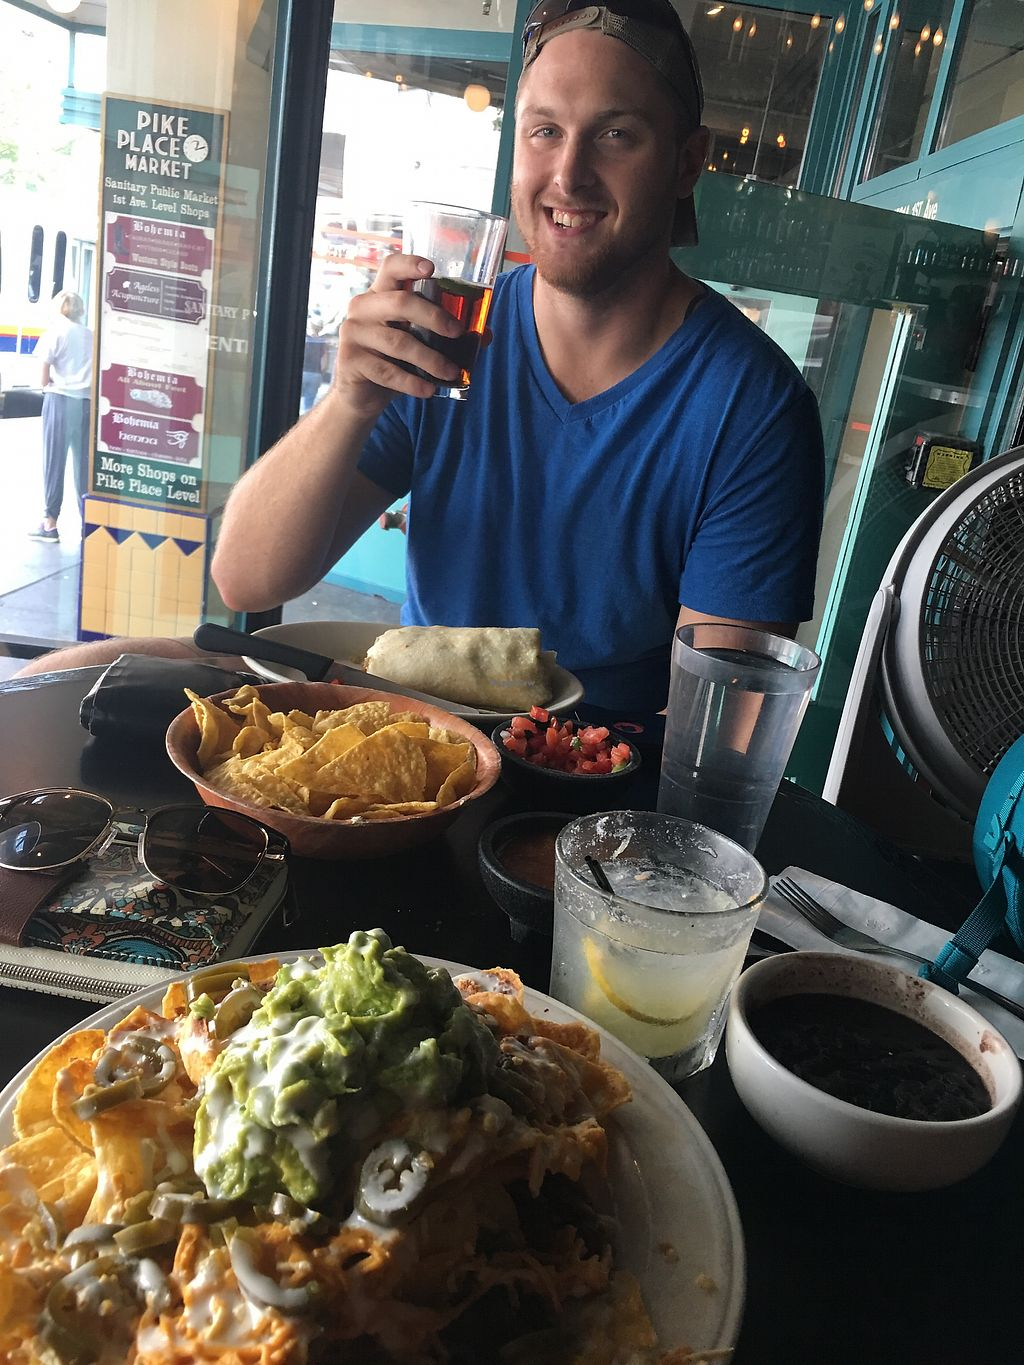 """Photo of El Borracho - Pike Place Market  by <a href=""""/members/profile/MalloryLynneBruner"""">MalloryLynneBruner</a> <br/>Vegan nachos!  <br/> August 17, 2017  - <a href='/contact/abuse/image/48563/293707'>Report</a>"""